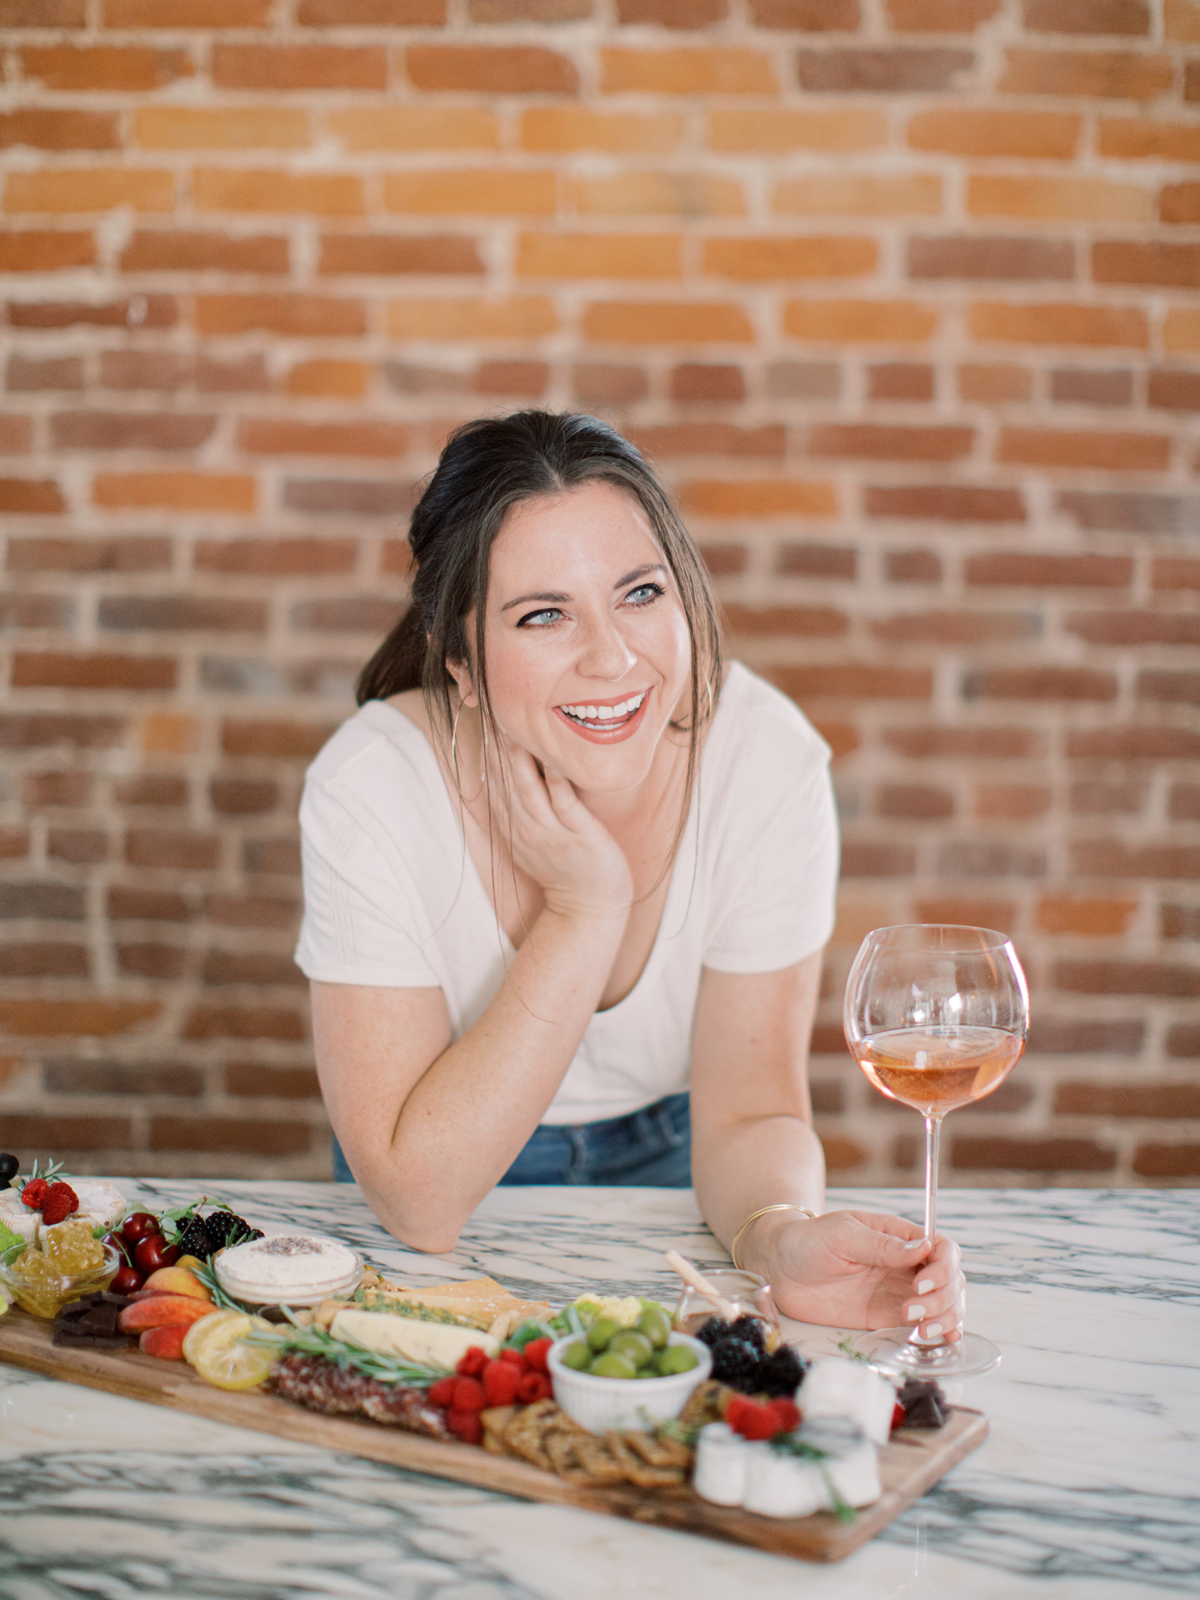 The Cheese Gal Goes Brick and Mortar With Cheese and Charcuterie